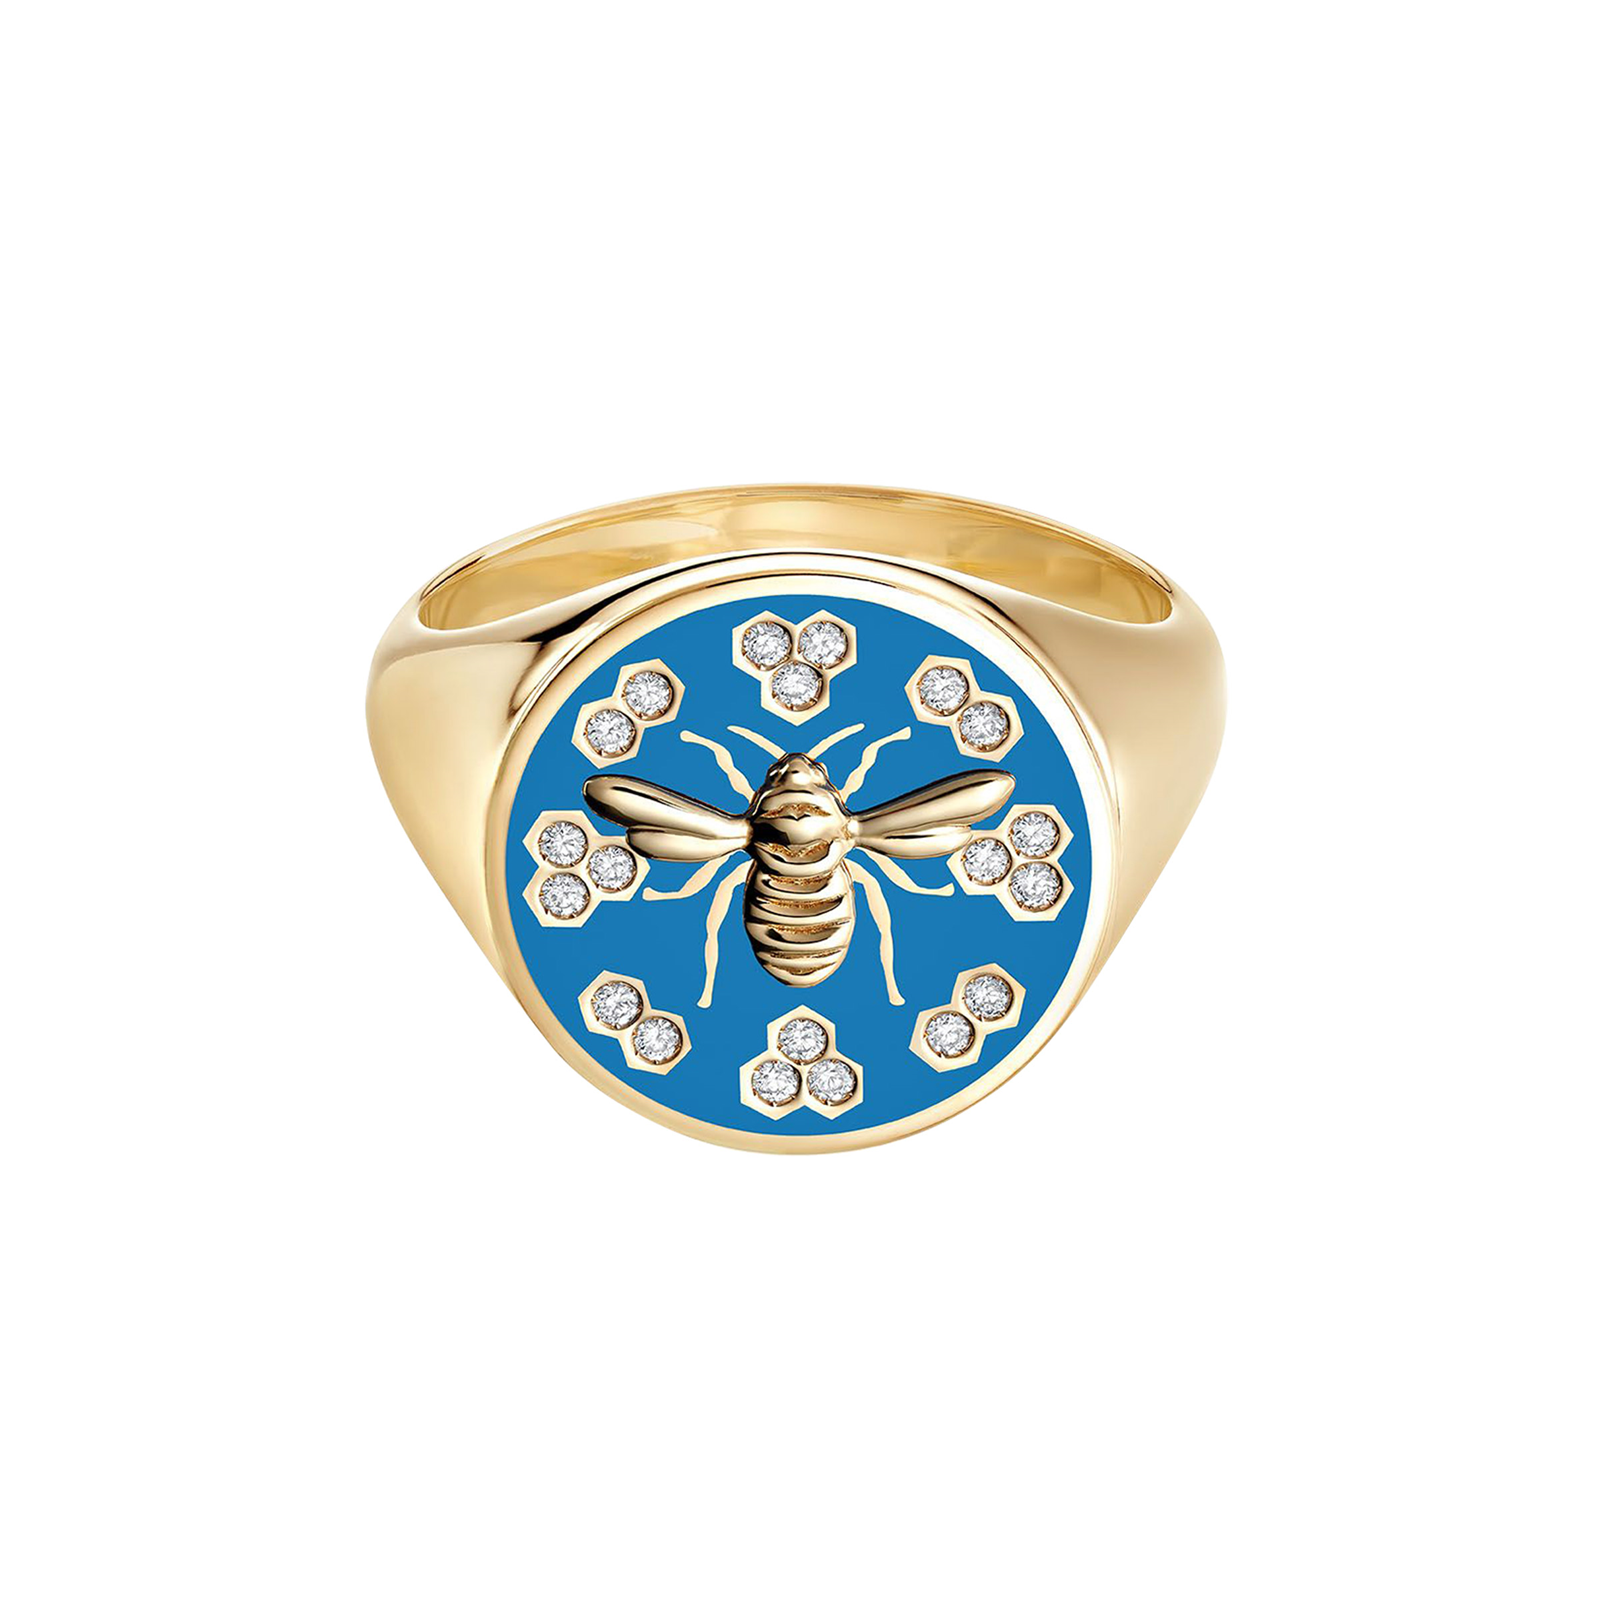 Birks Bee Chic Large Blue Enamel and Diamond Round Signet Ring - Ring Size J